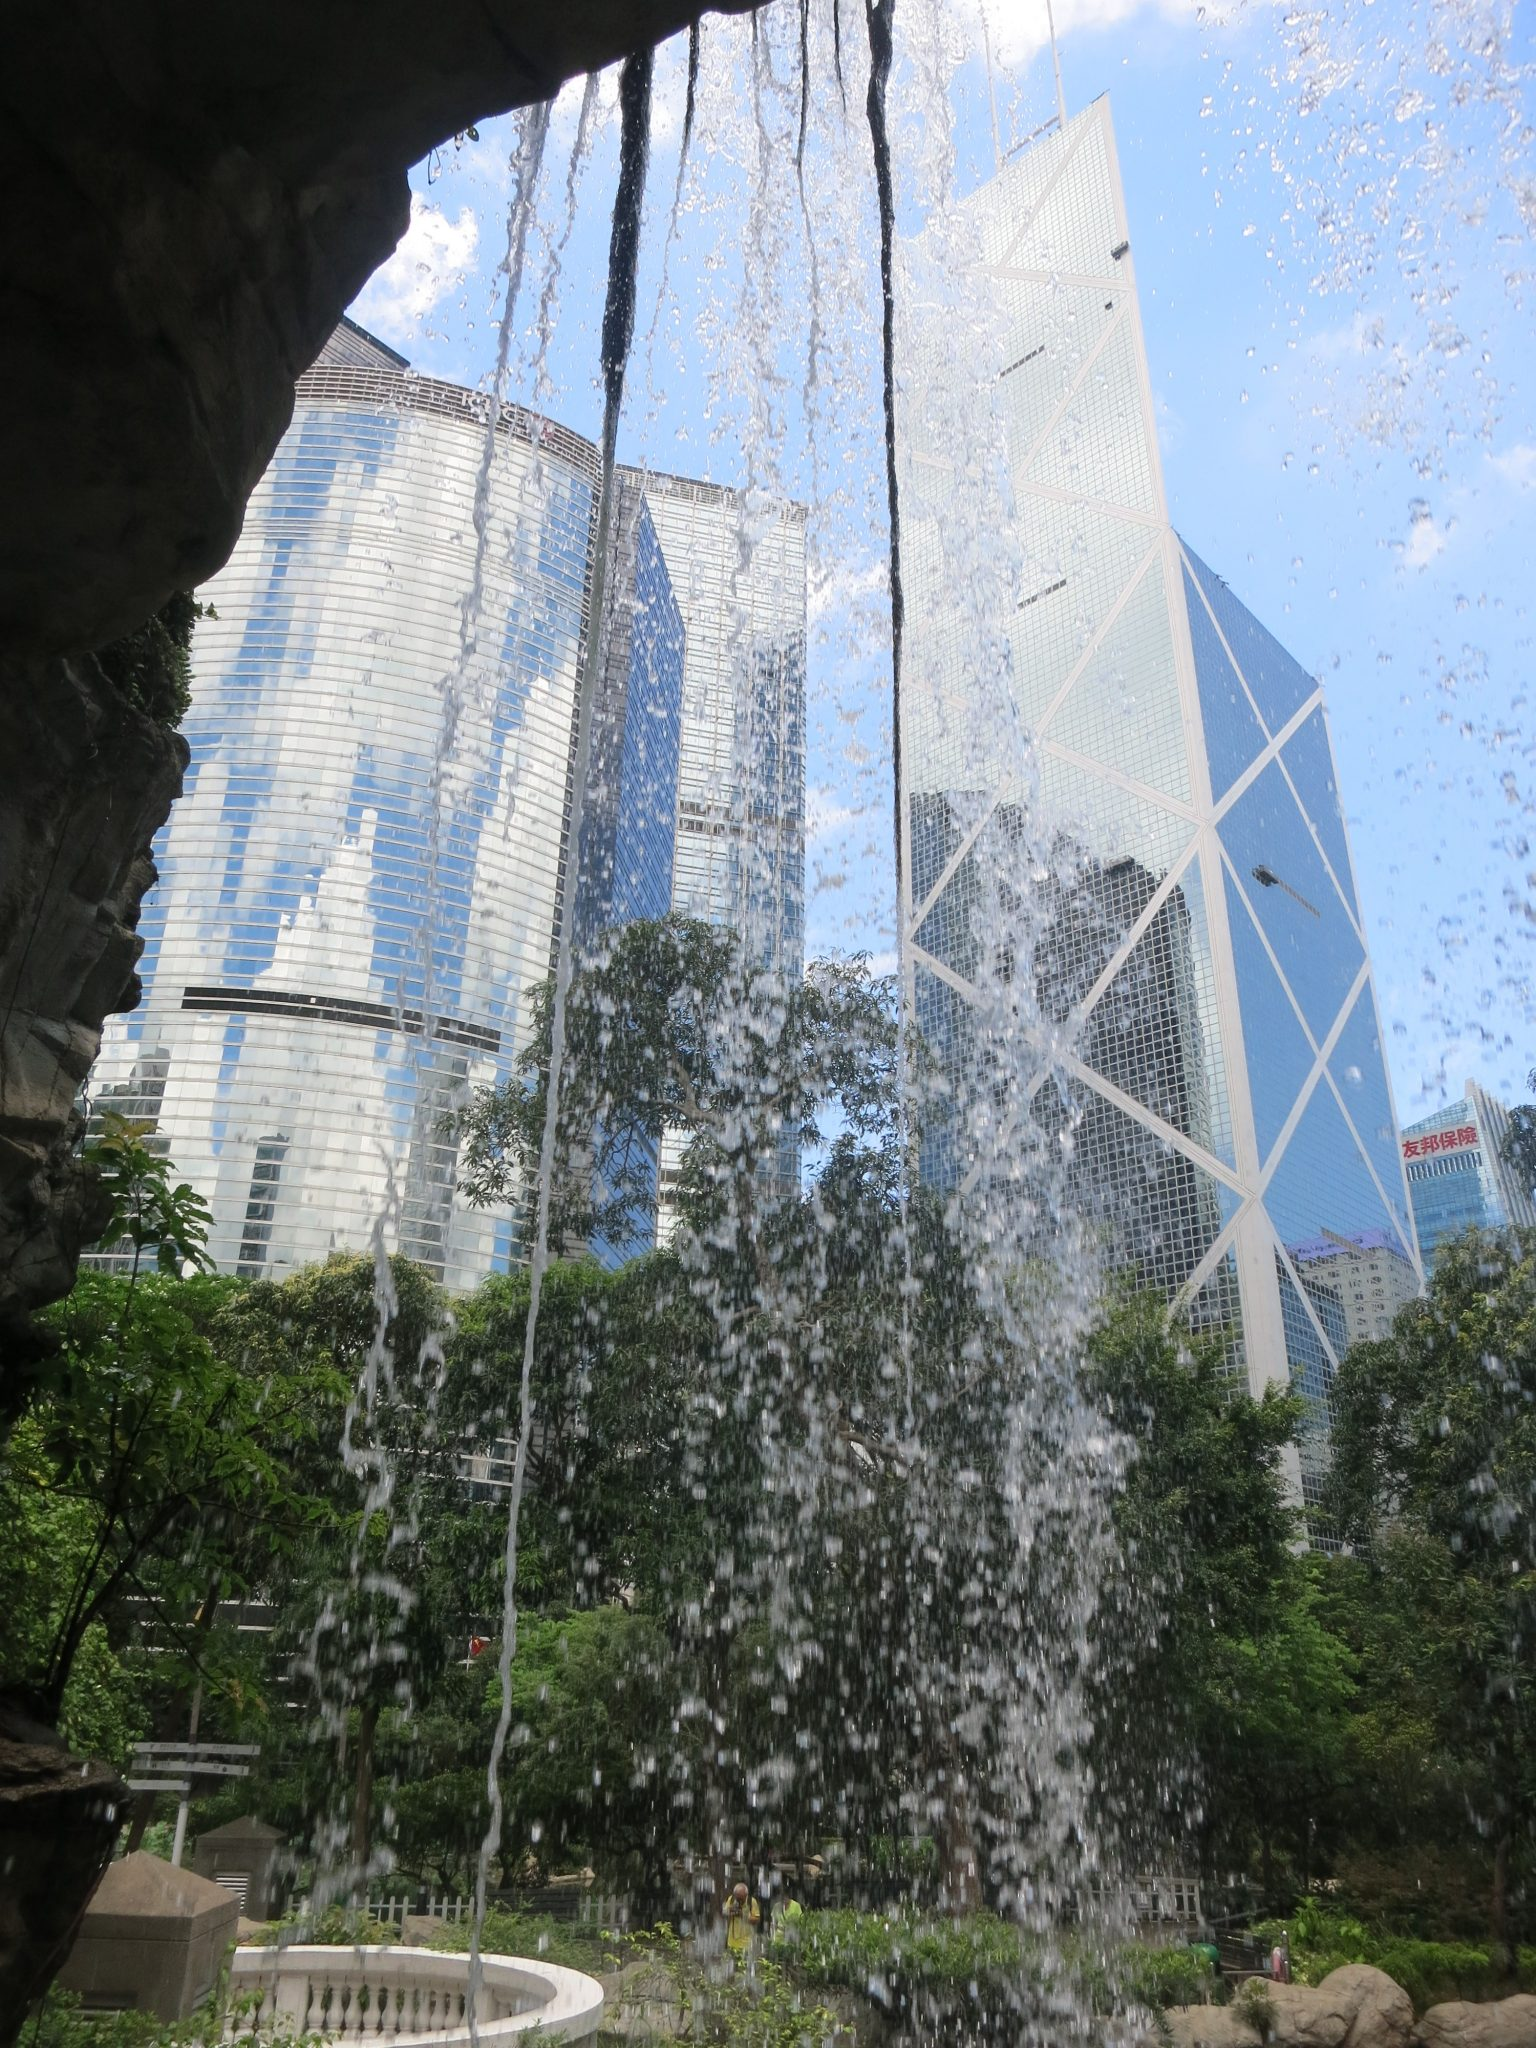 Some Hong Kong Buildings As Seen Through A Landscaped Waterfall In Hong Kong Park